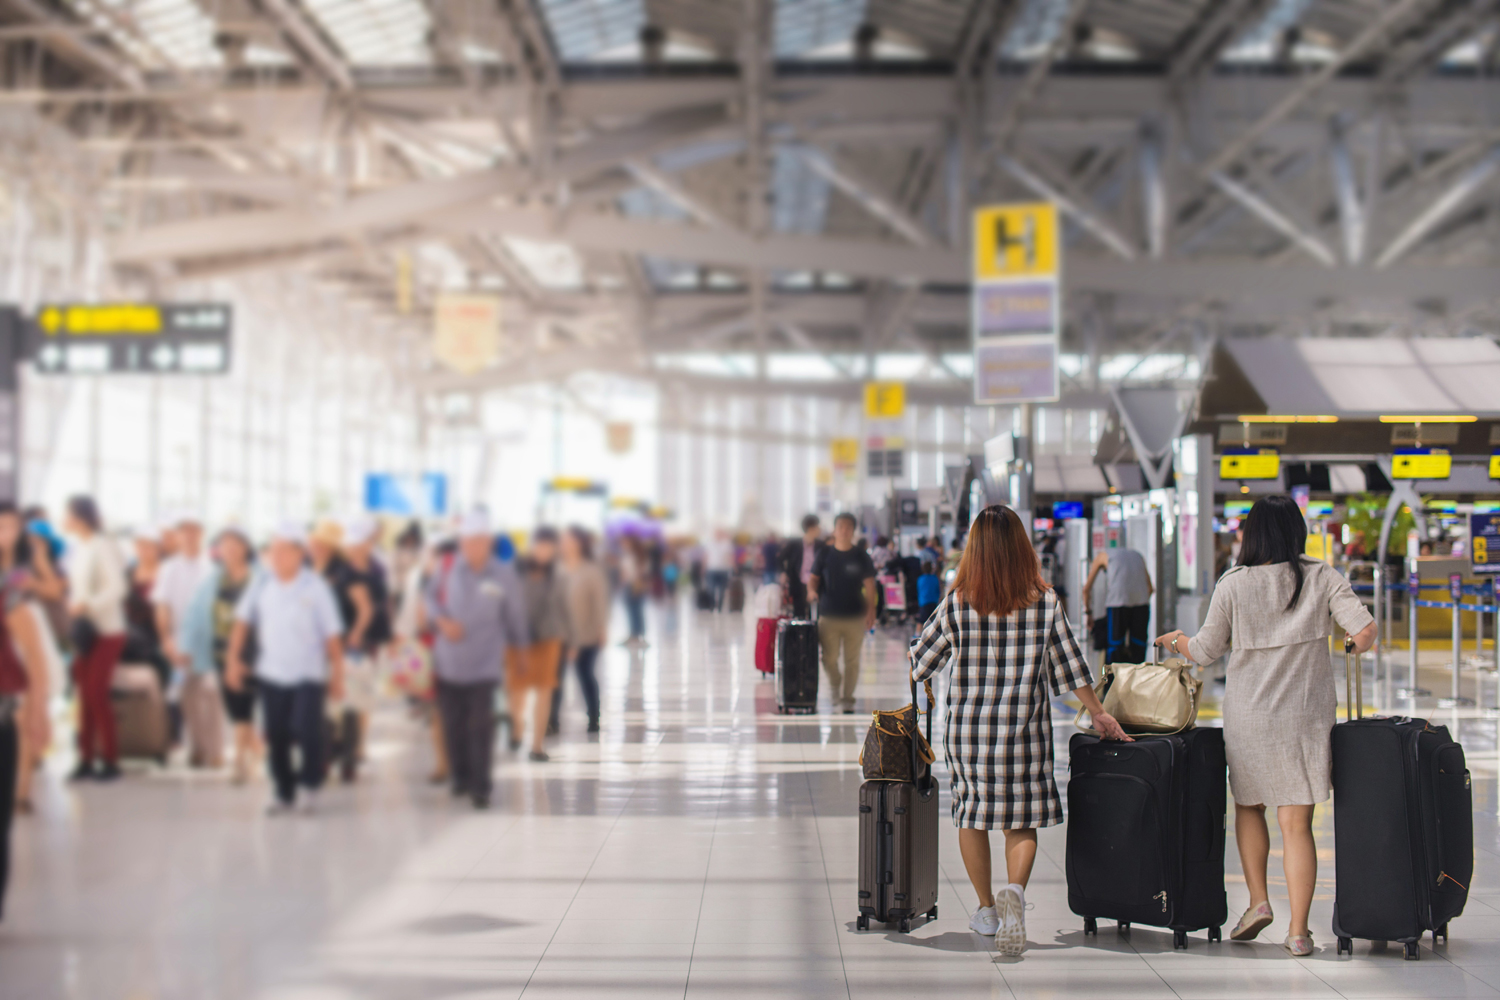 Repatriation flights in the UAE: everything you need to know